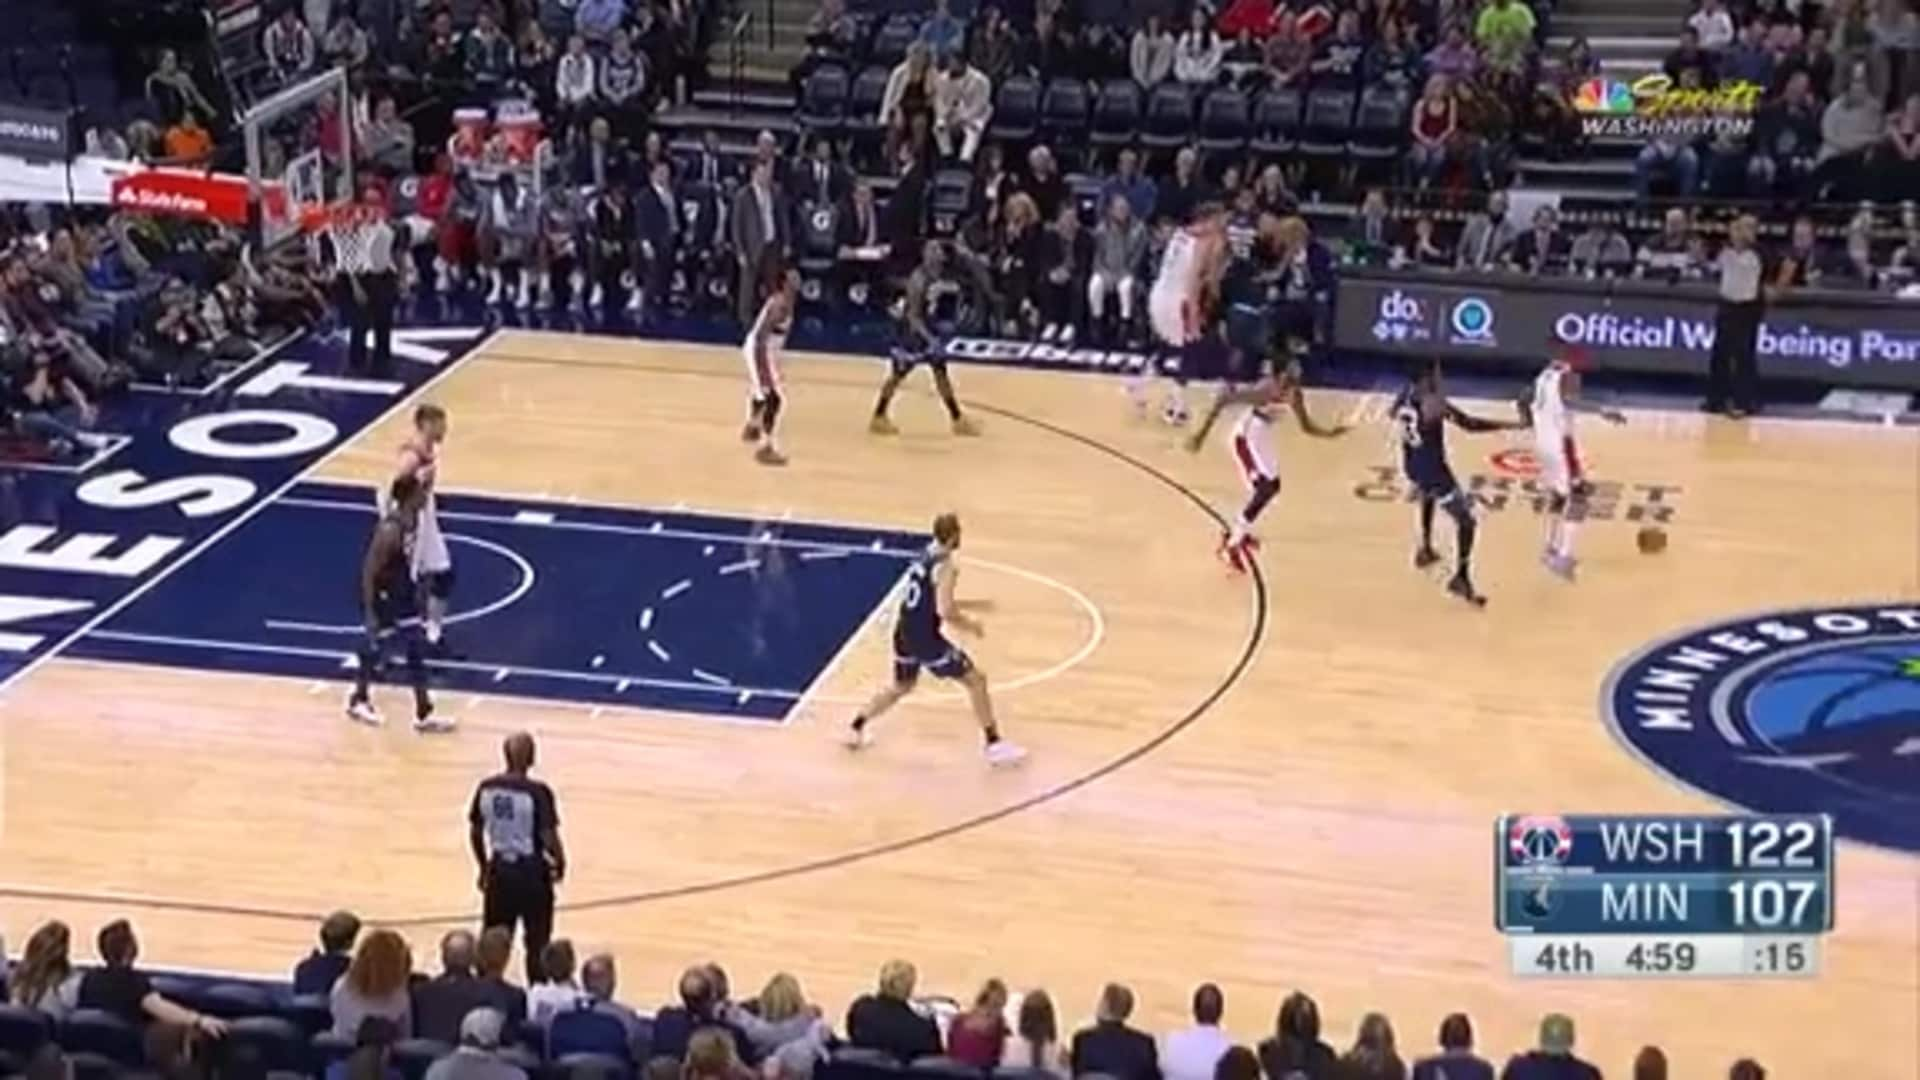 Highlights: Bradley Beal vs. Timberwolves - 11/15/19